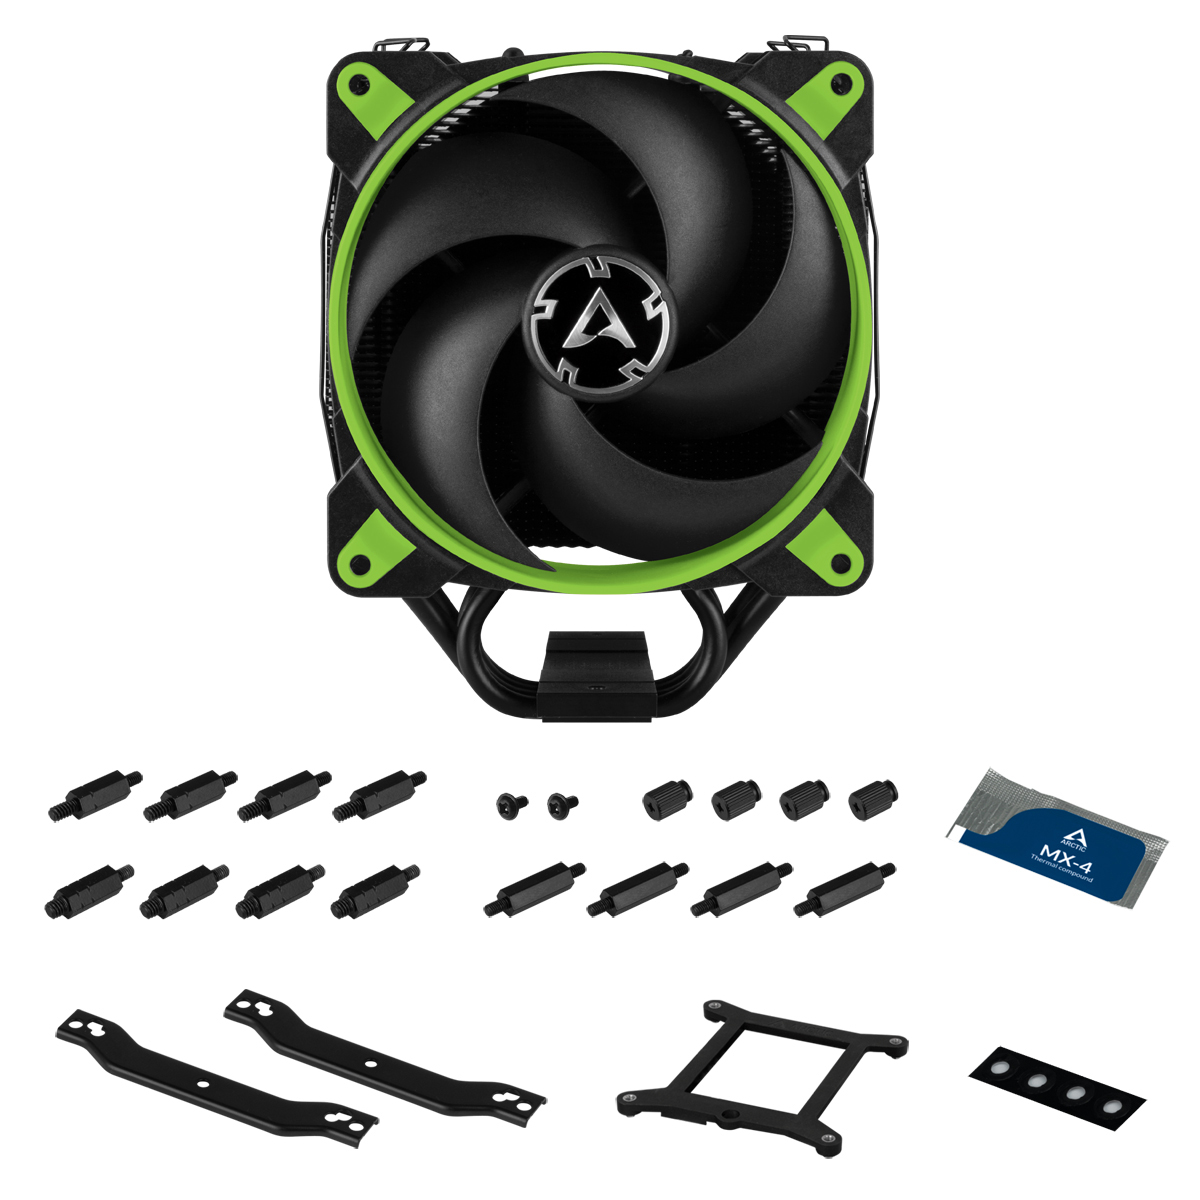 Ψύκτρα CPU Freezer 34 eSports DUO Green (MX-4 0.8gr included)